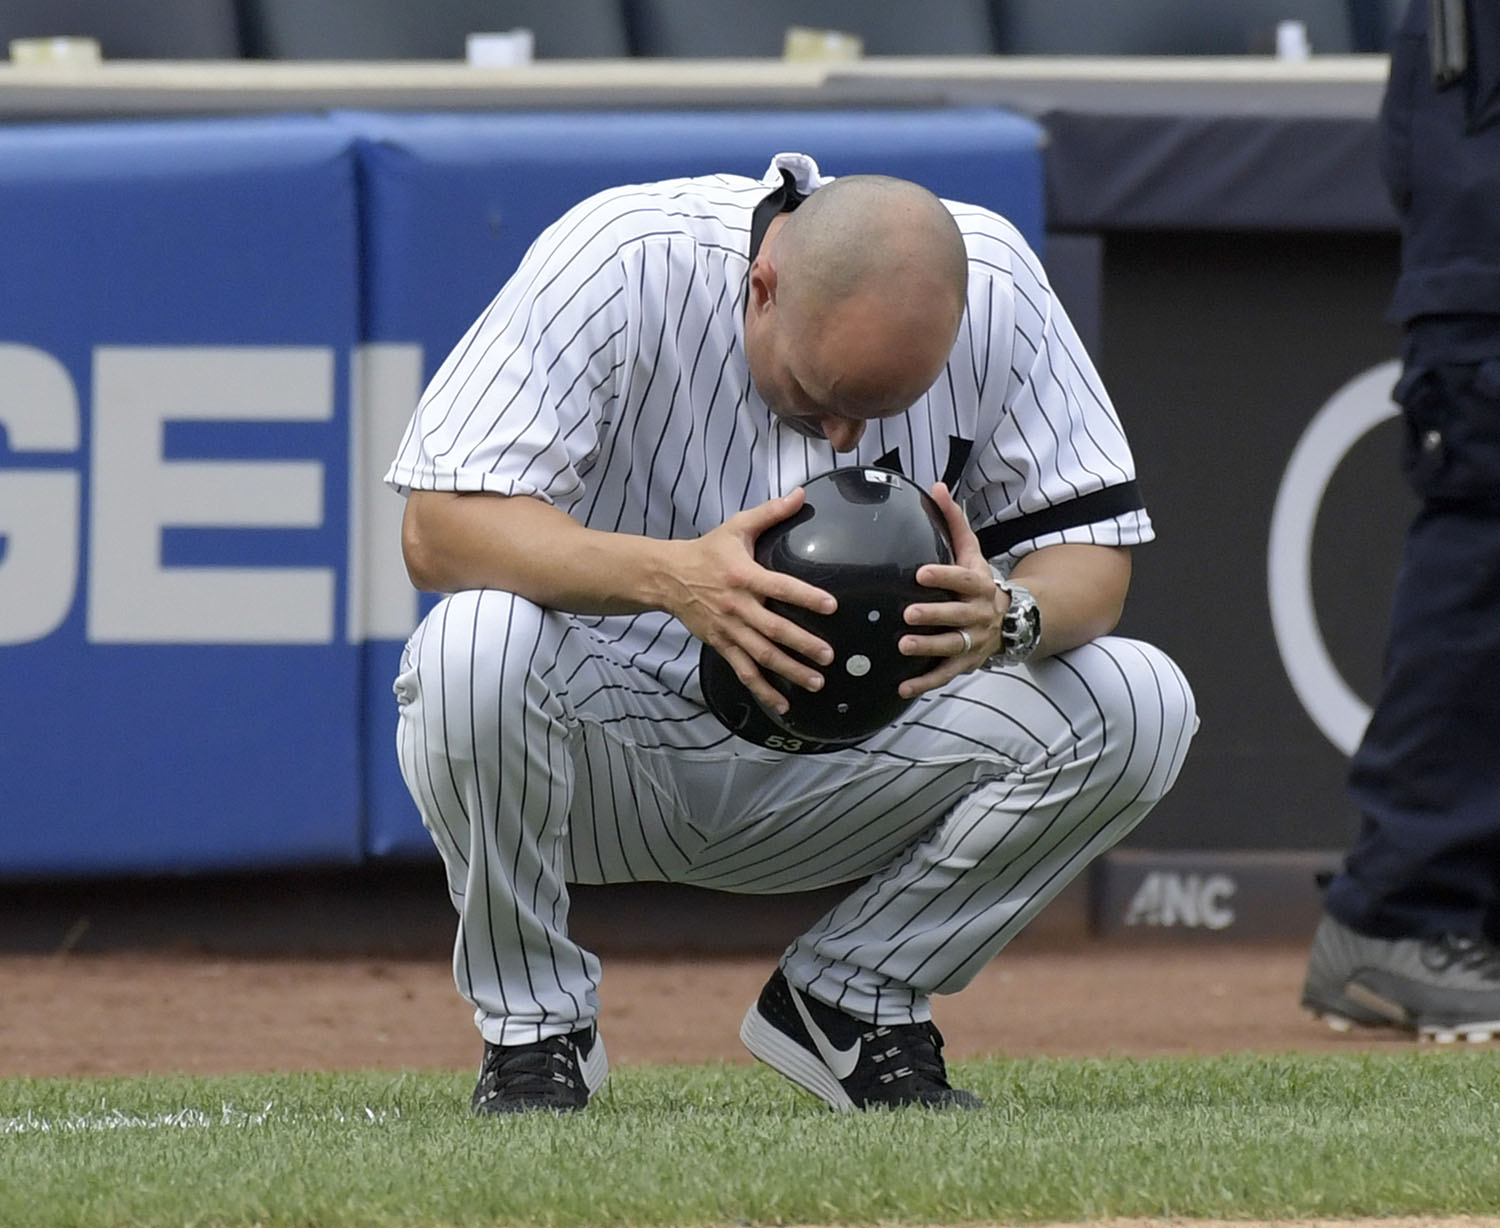 <div class='meta'><div class='origin-logo' data-origin='AP'></div><span class='caption-text' data-credit='AP Photo/Bill Kostroun'>New York Yankees third base coach Joe Espada reacts after a young girl was hit by a line drive during the fifth inning of a baseball game against the Minnesota Twins.</span></div>